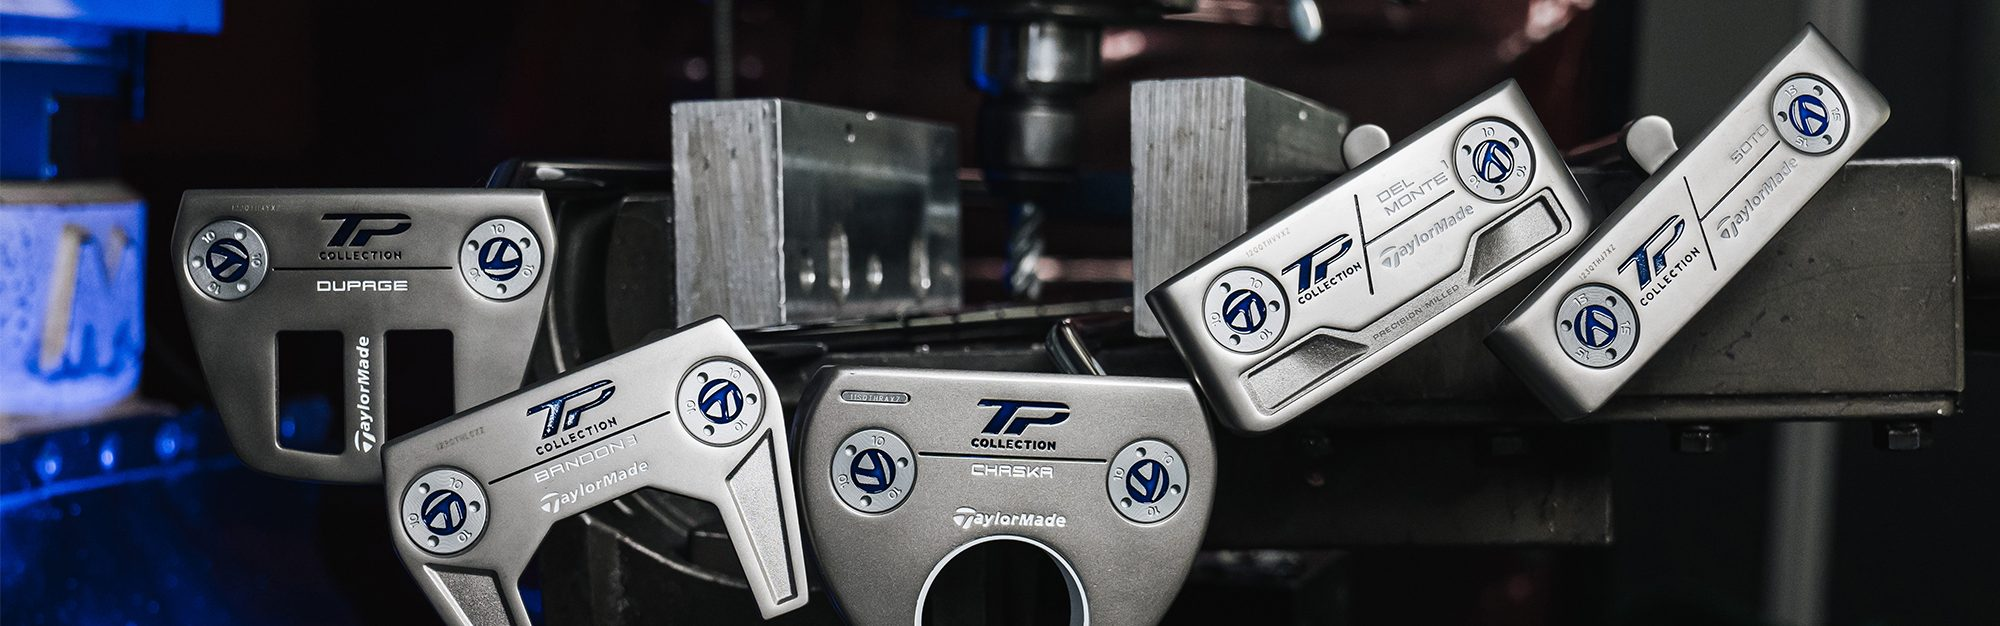 A classic look with a twist: TaylorMade launch new TP putters for 2021